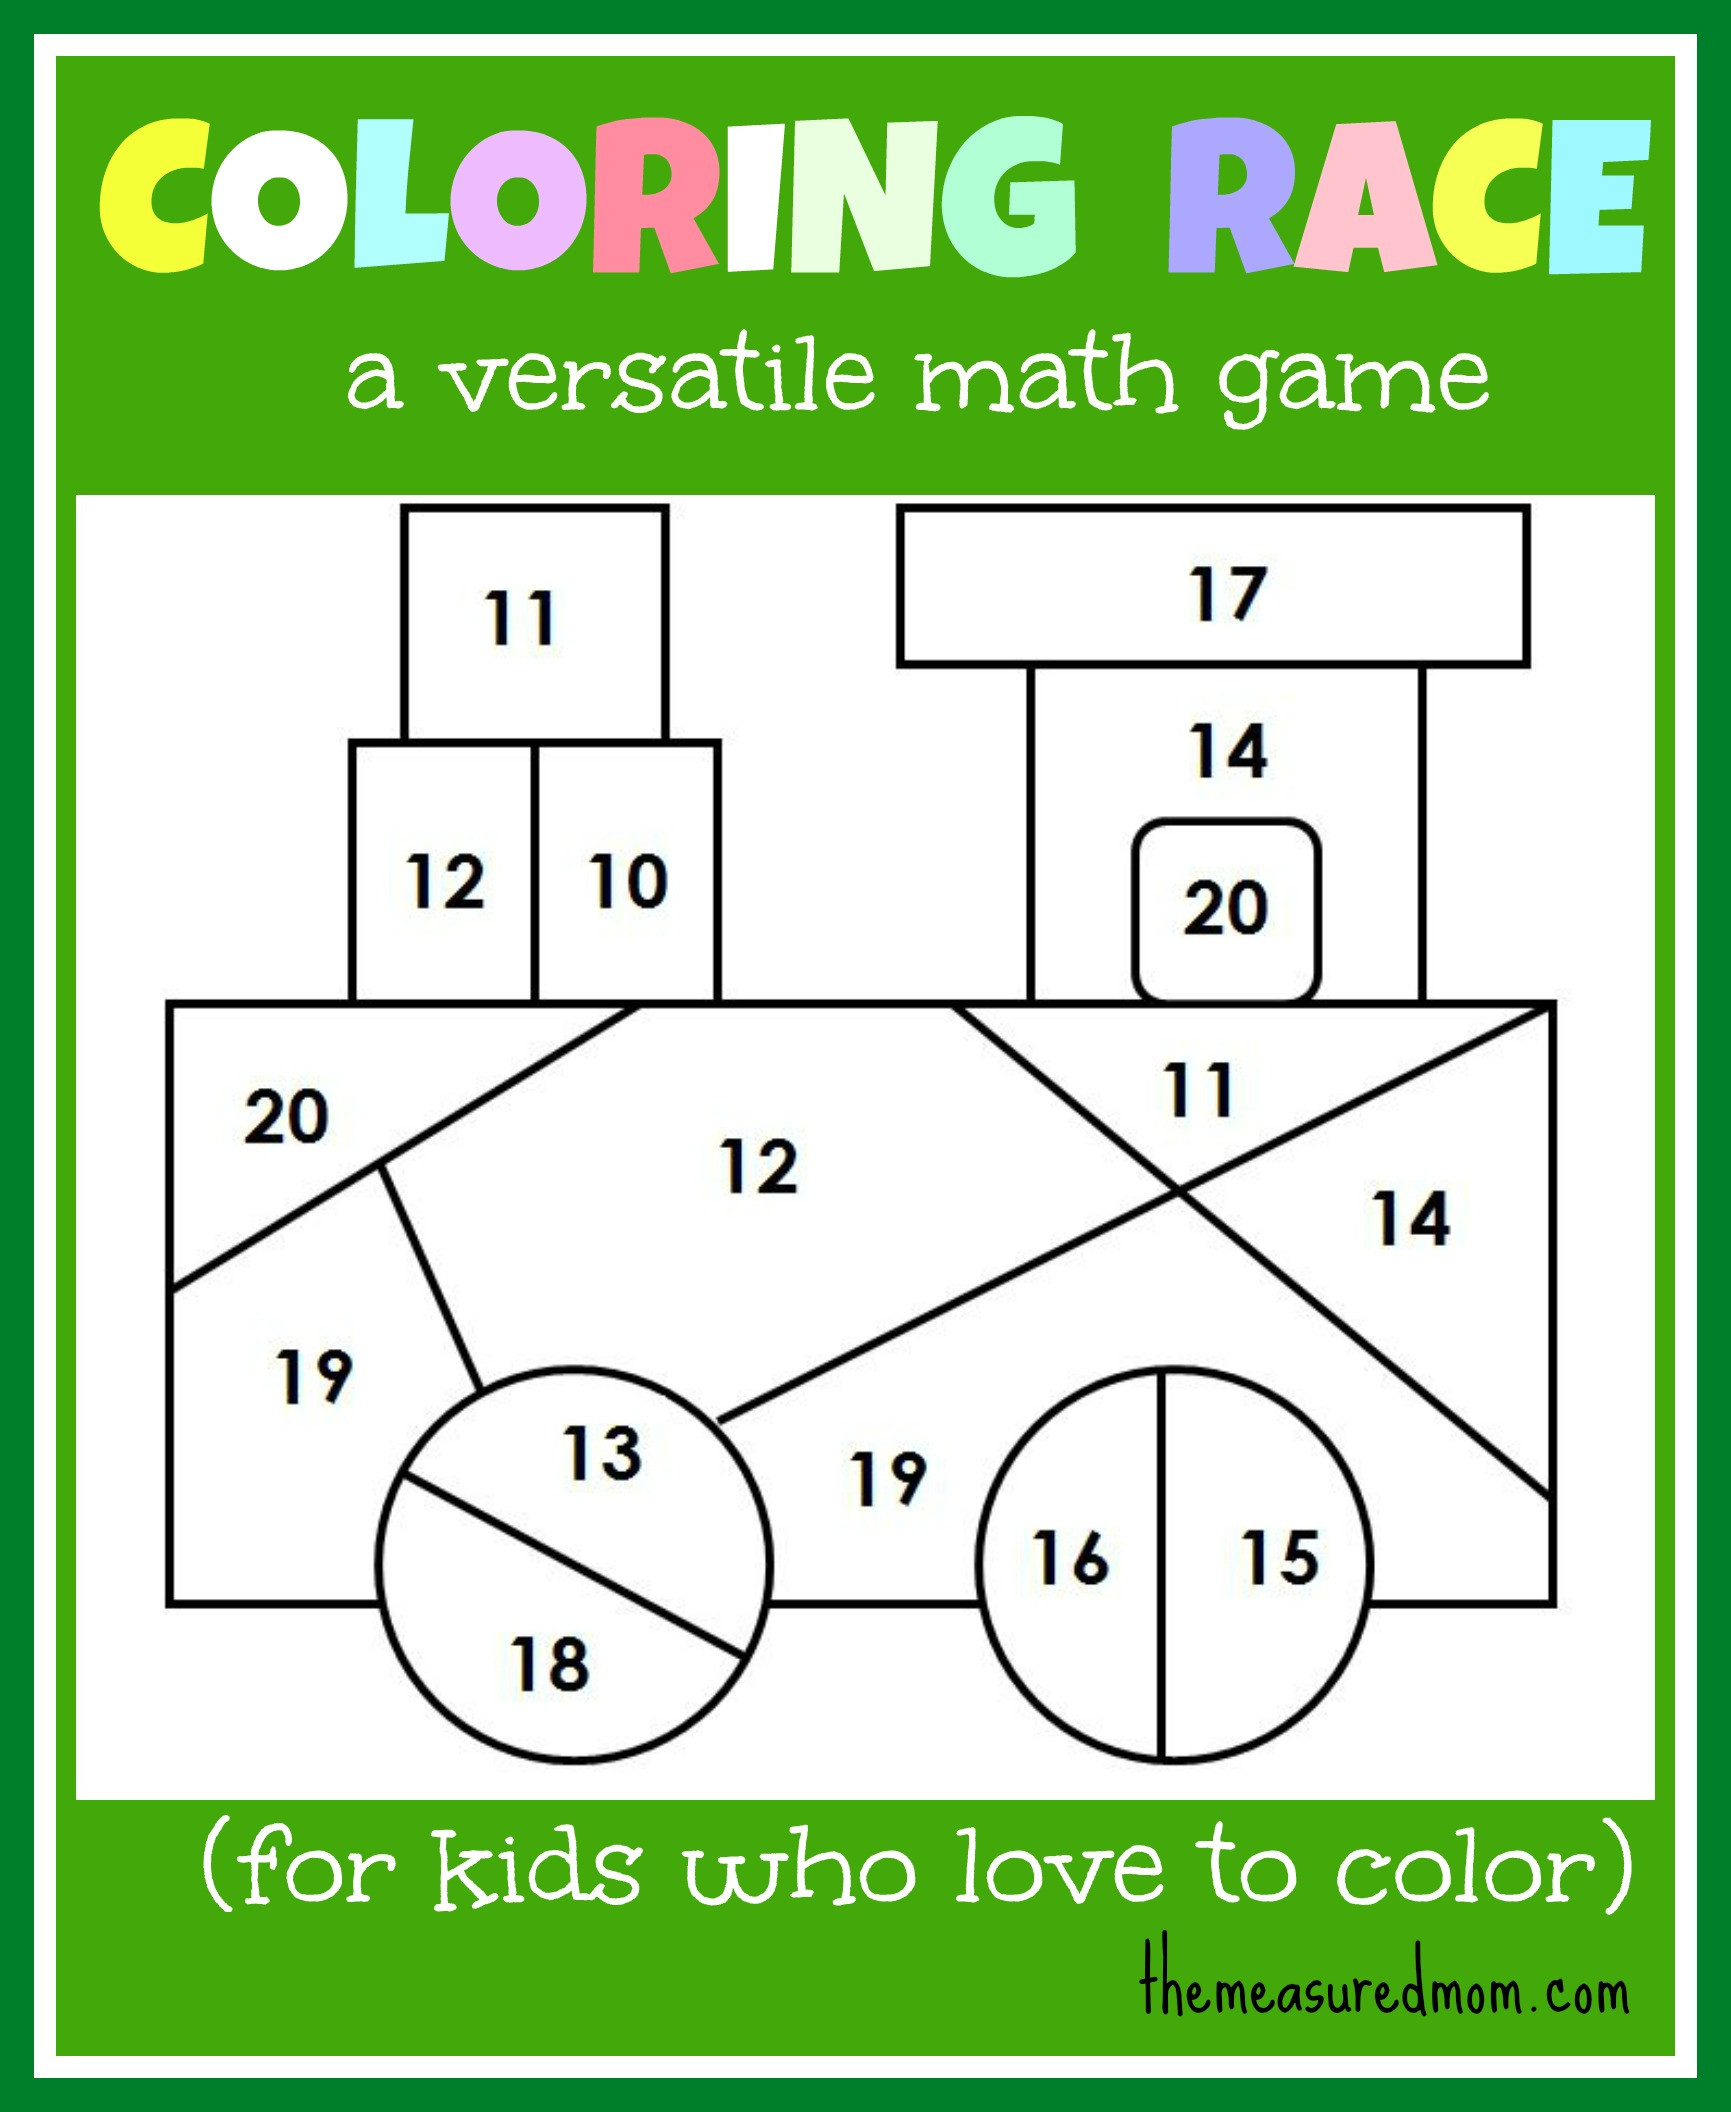 Online Coloring Games For Kids  Math game for kids Coloring Race bines math and